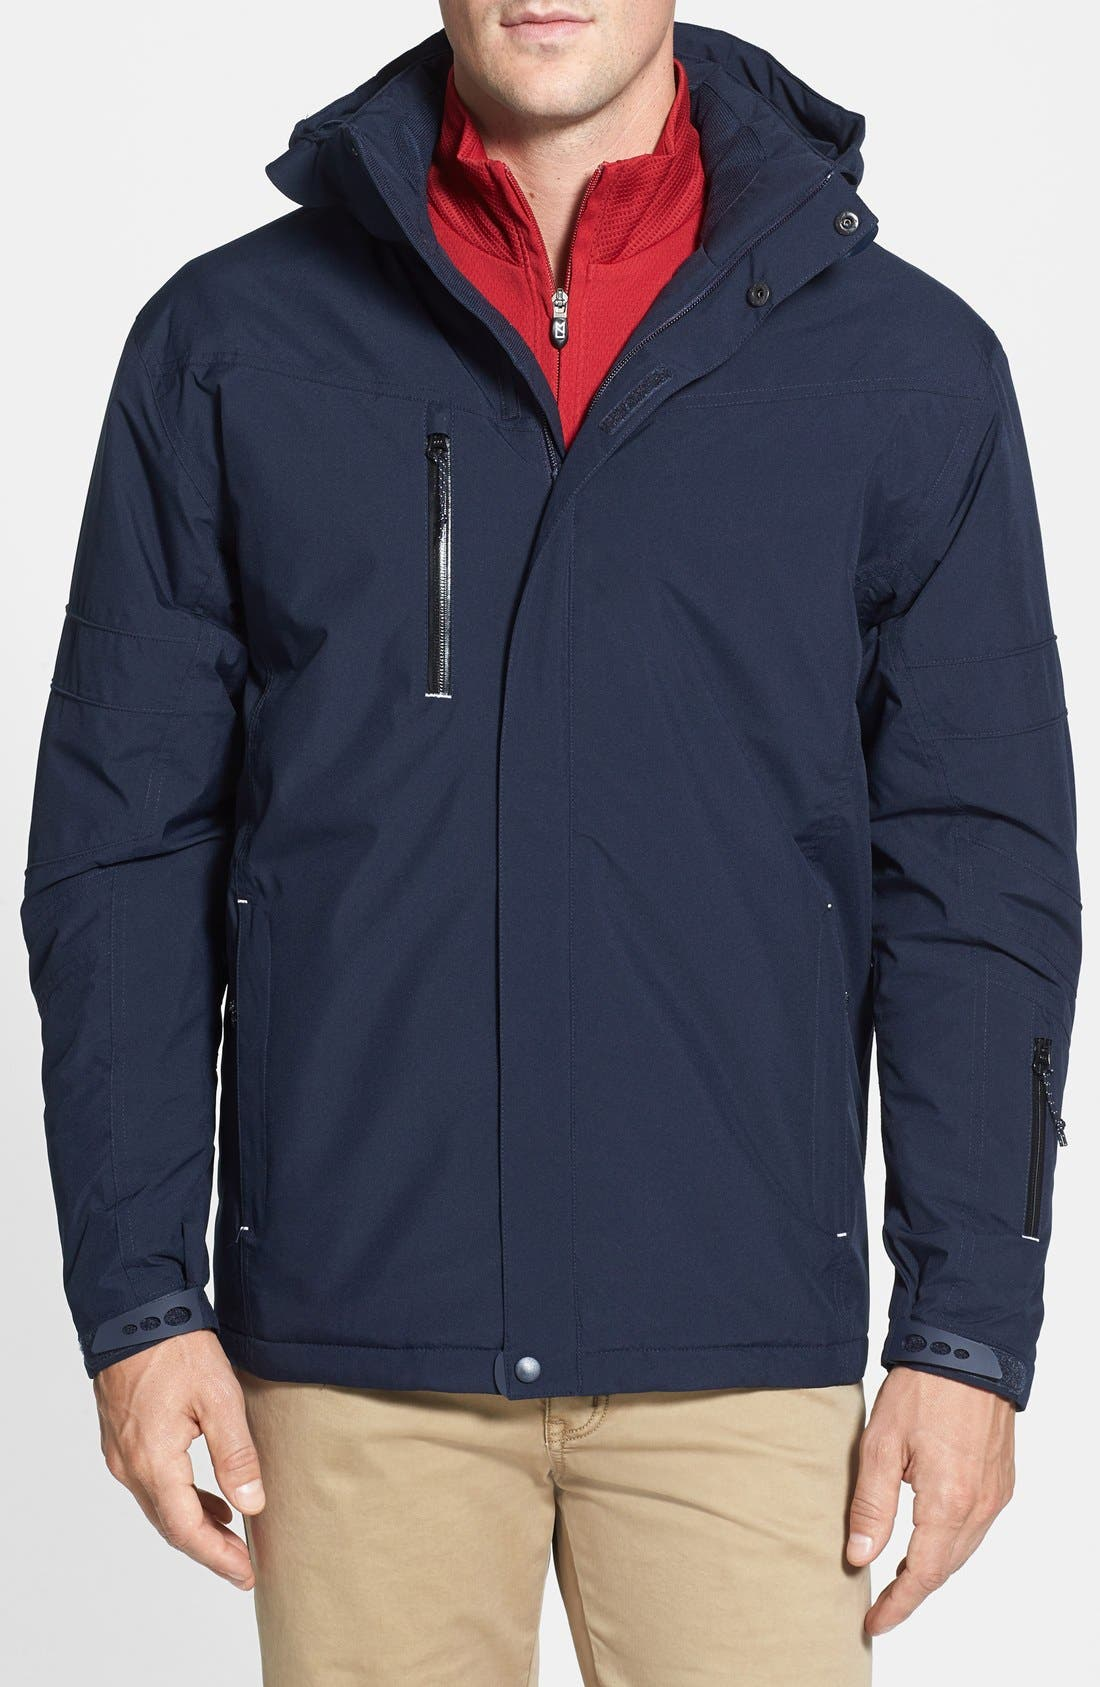 Cutter & Buck WeatherTec Sanders Jacket